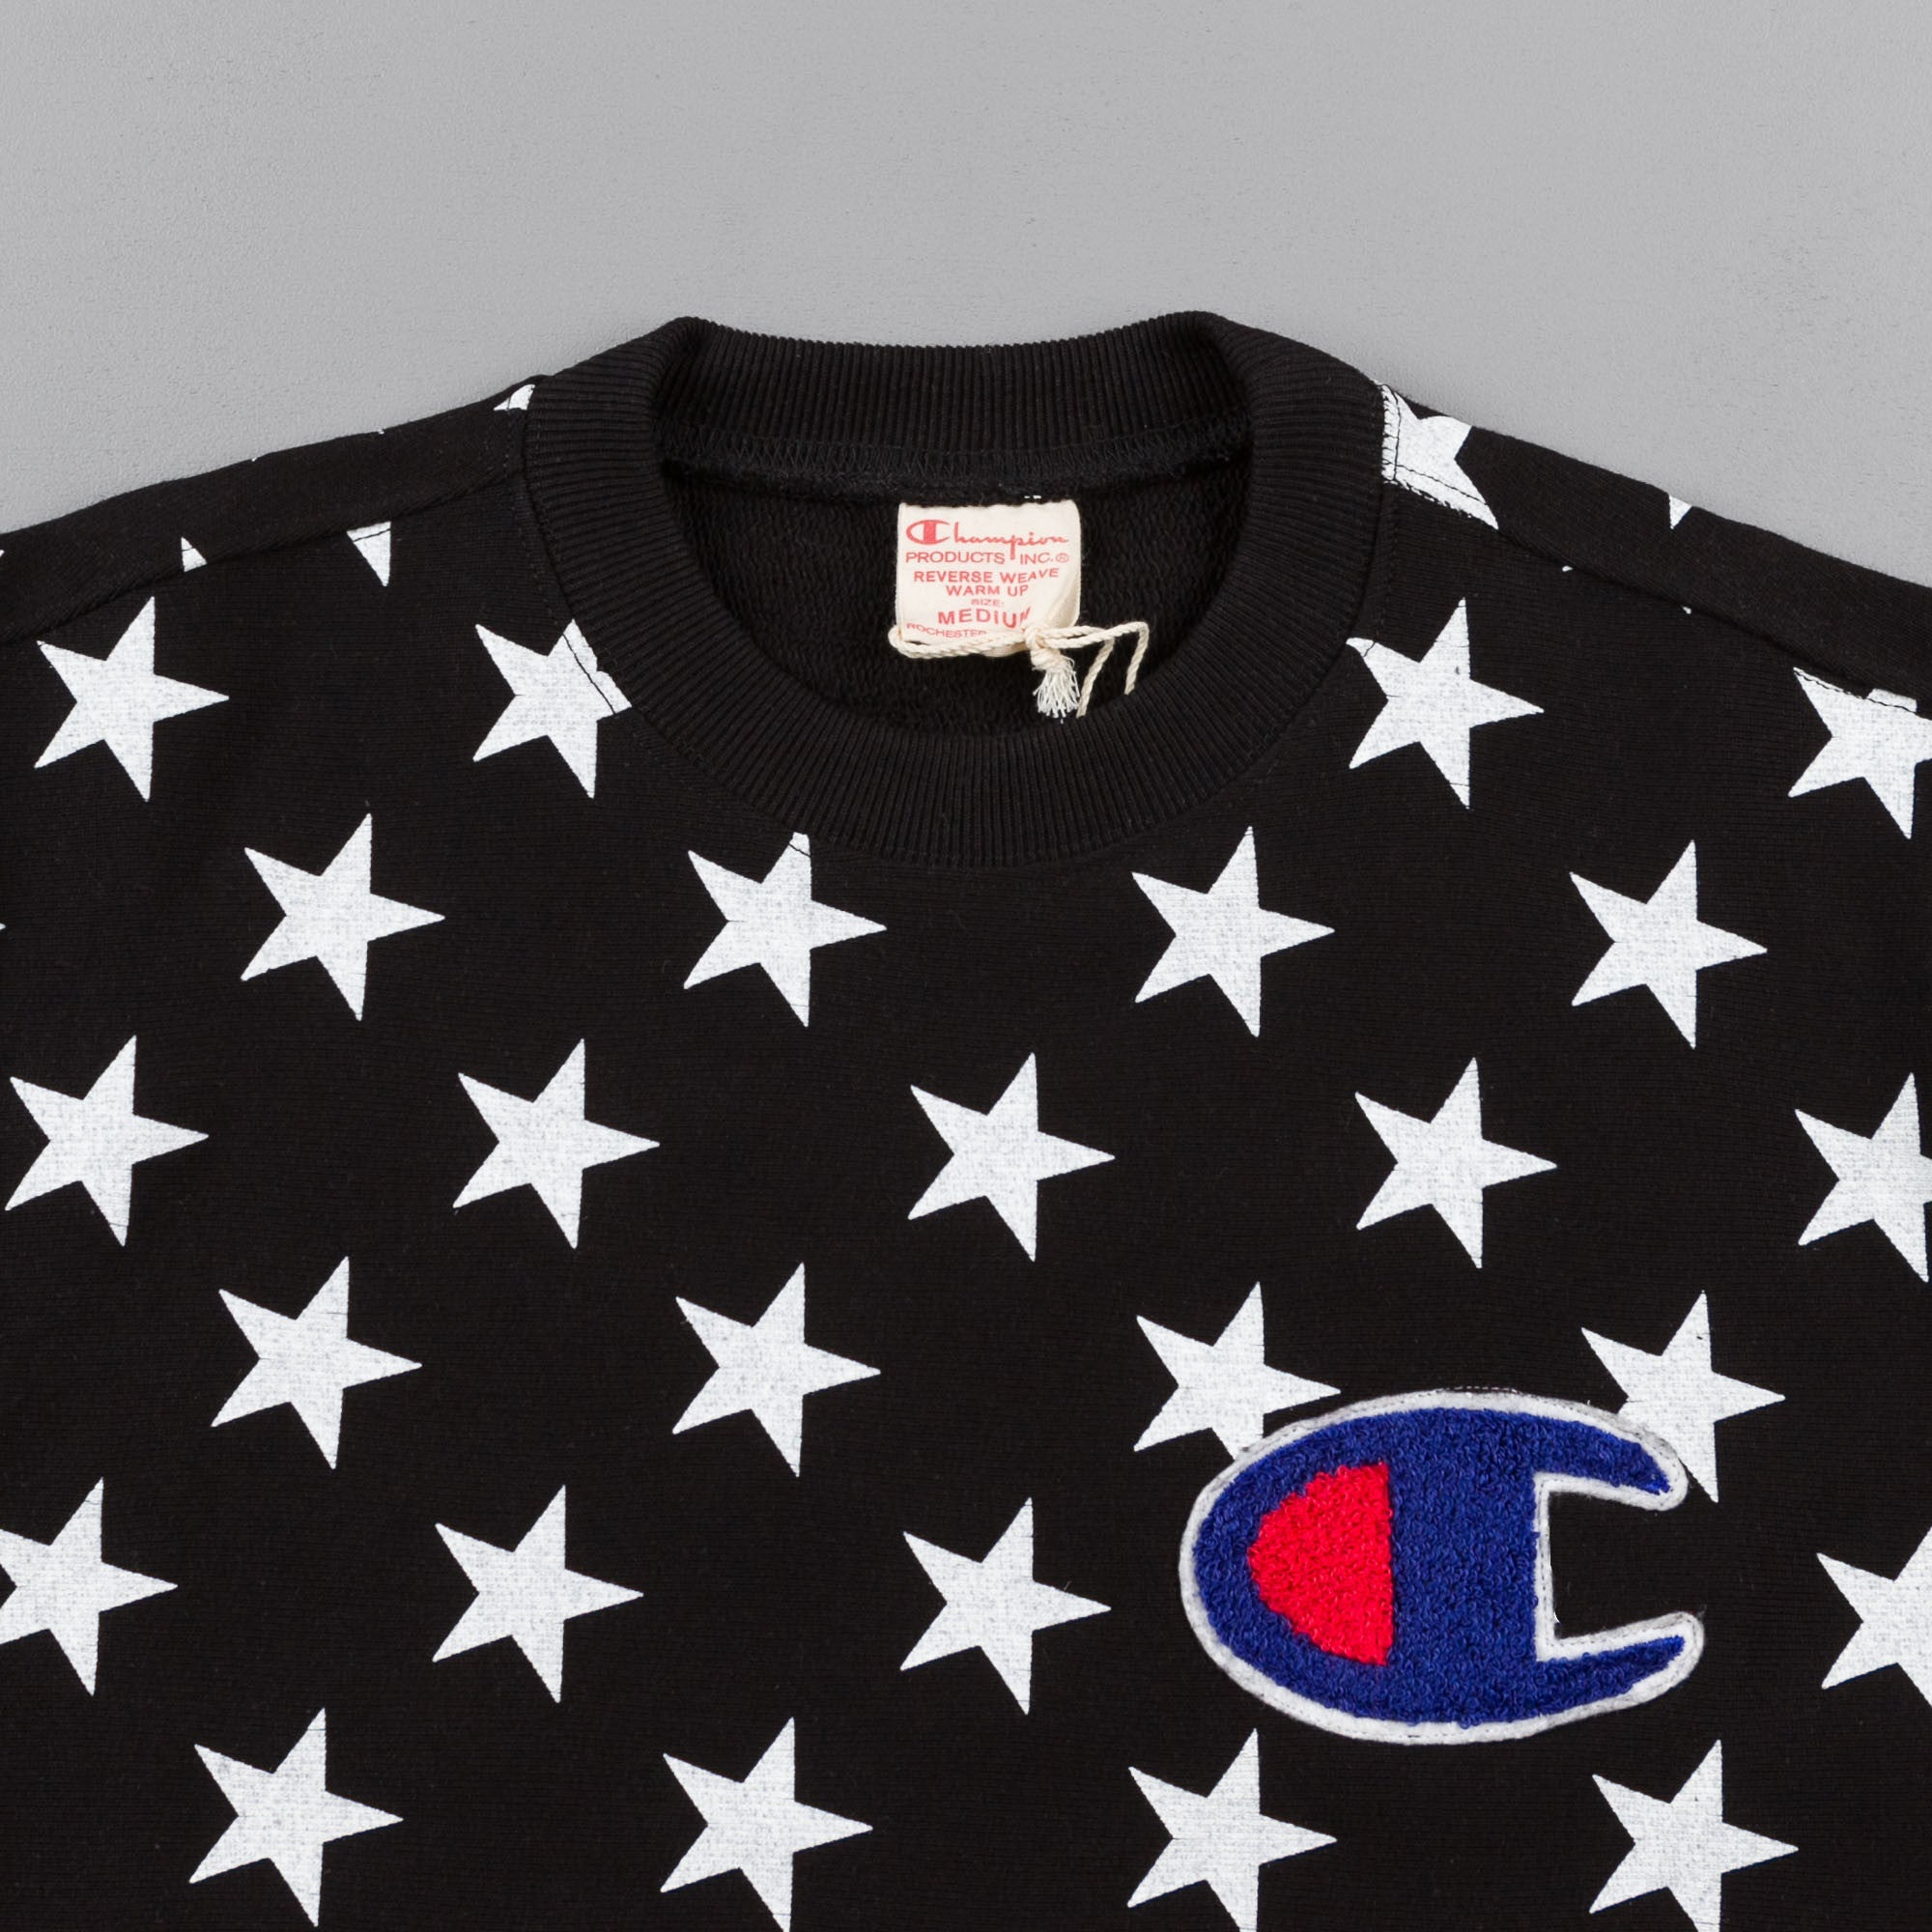 Champion All Over Print Crewneck Sweatshirt - Black